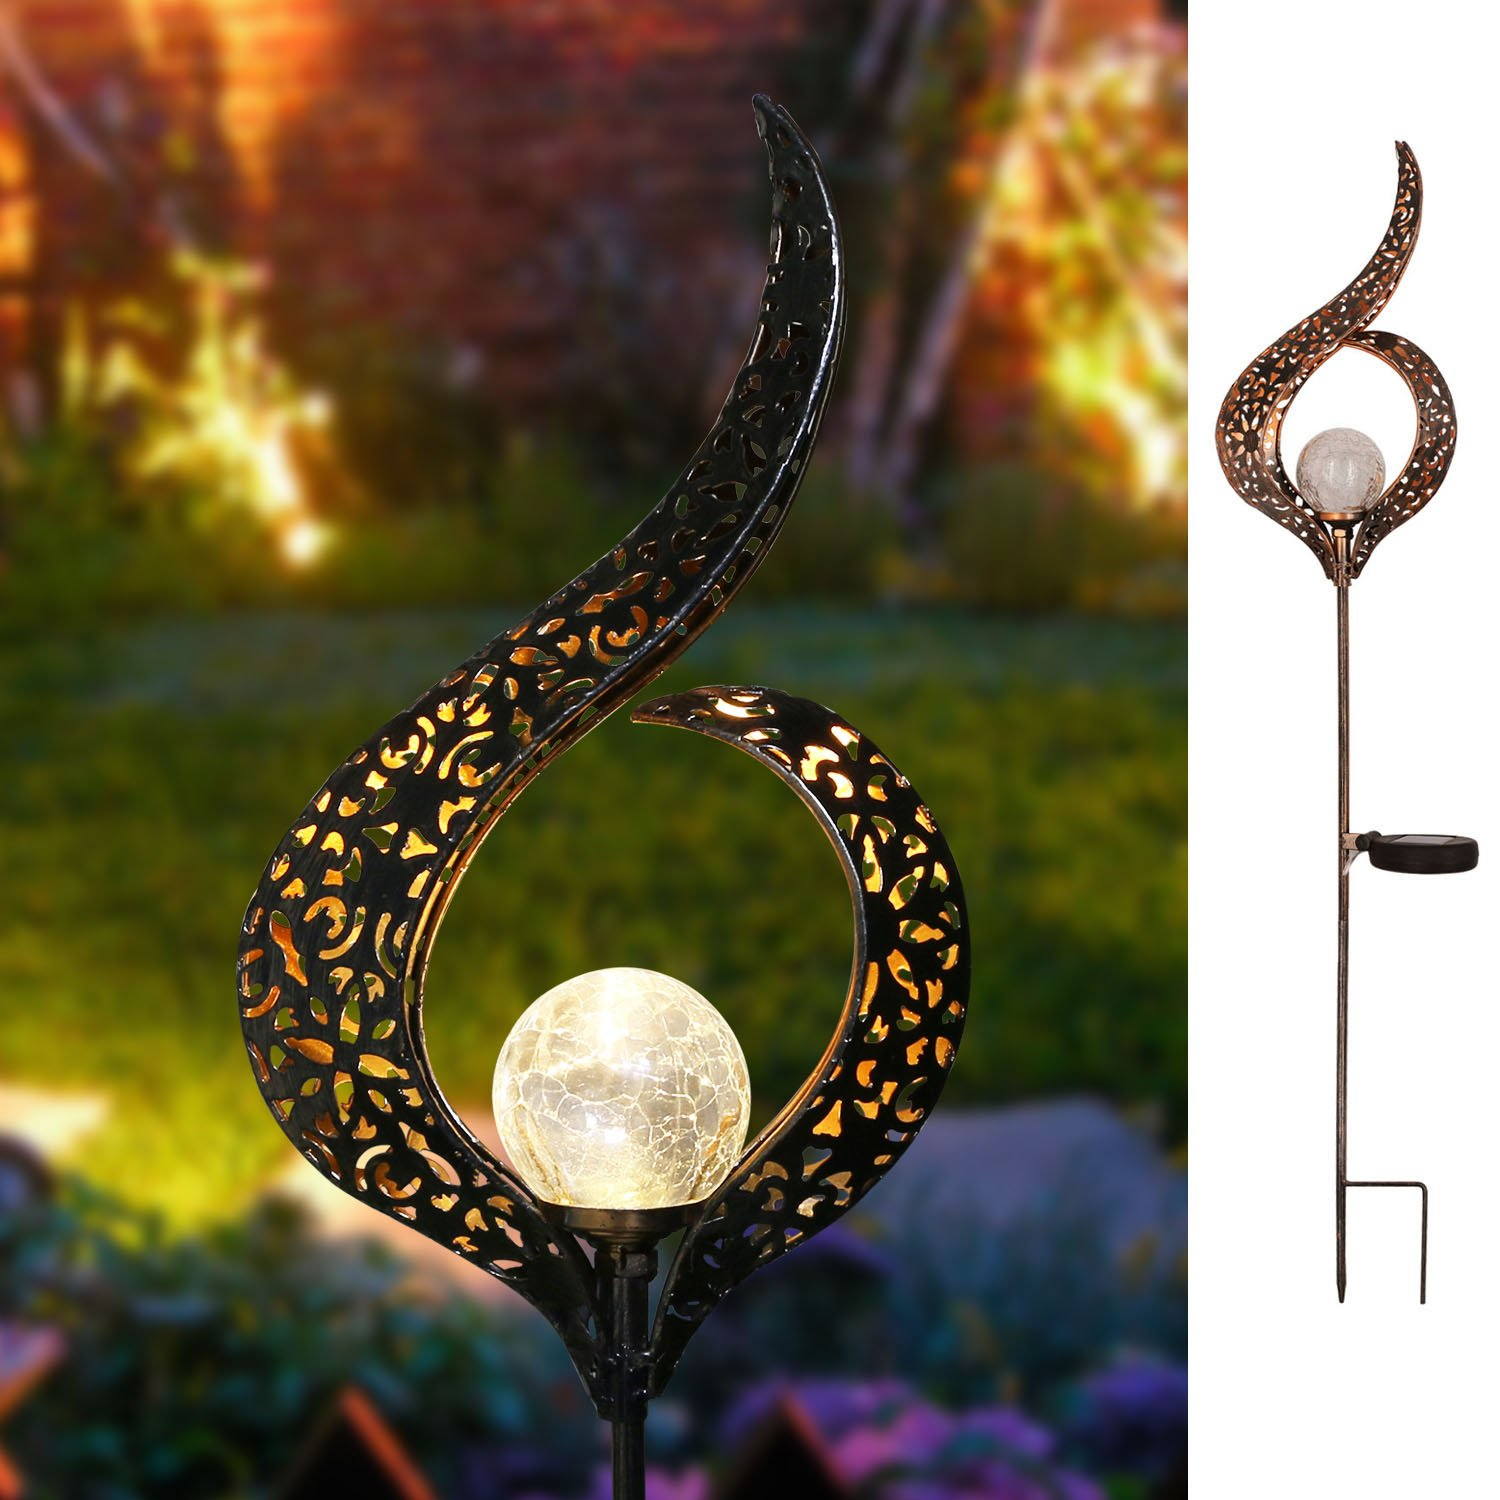 Homeimpro Garden Solar Lights Outdoor, Moon Crackle Glass Globe Stake Lights,Waterproof LED Lights for Garden,Lawn,Patio or Courtyard (Flower.)